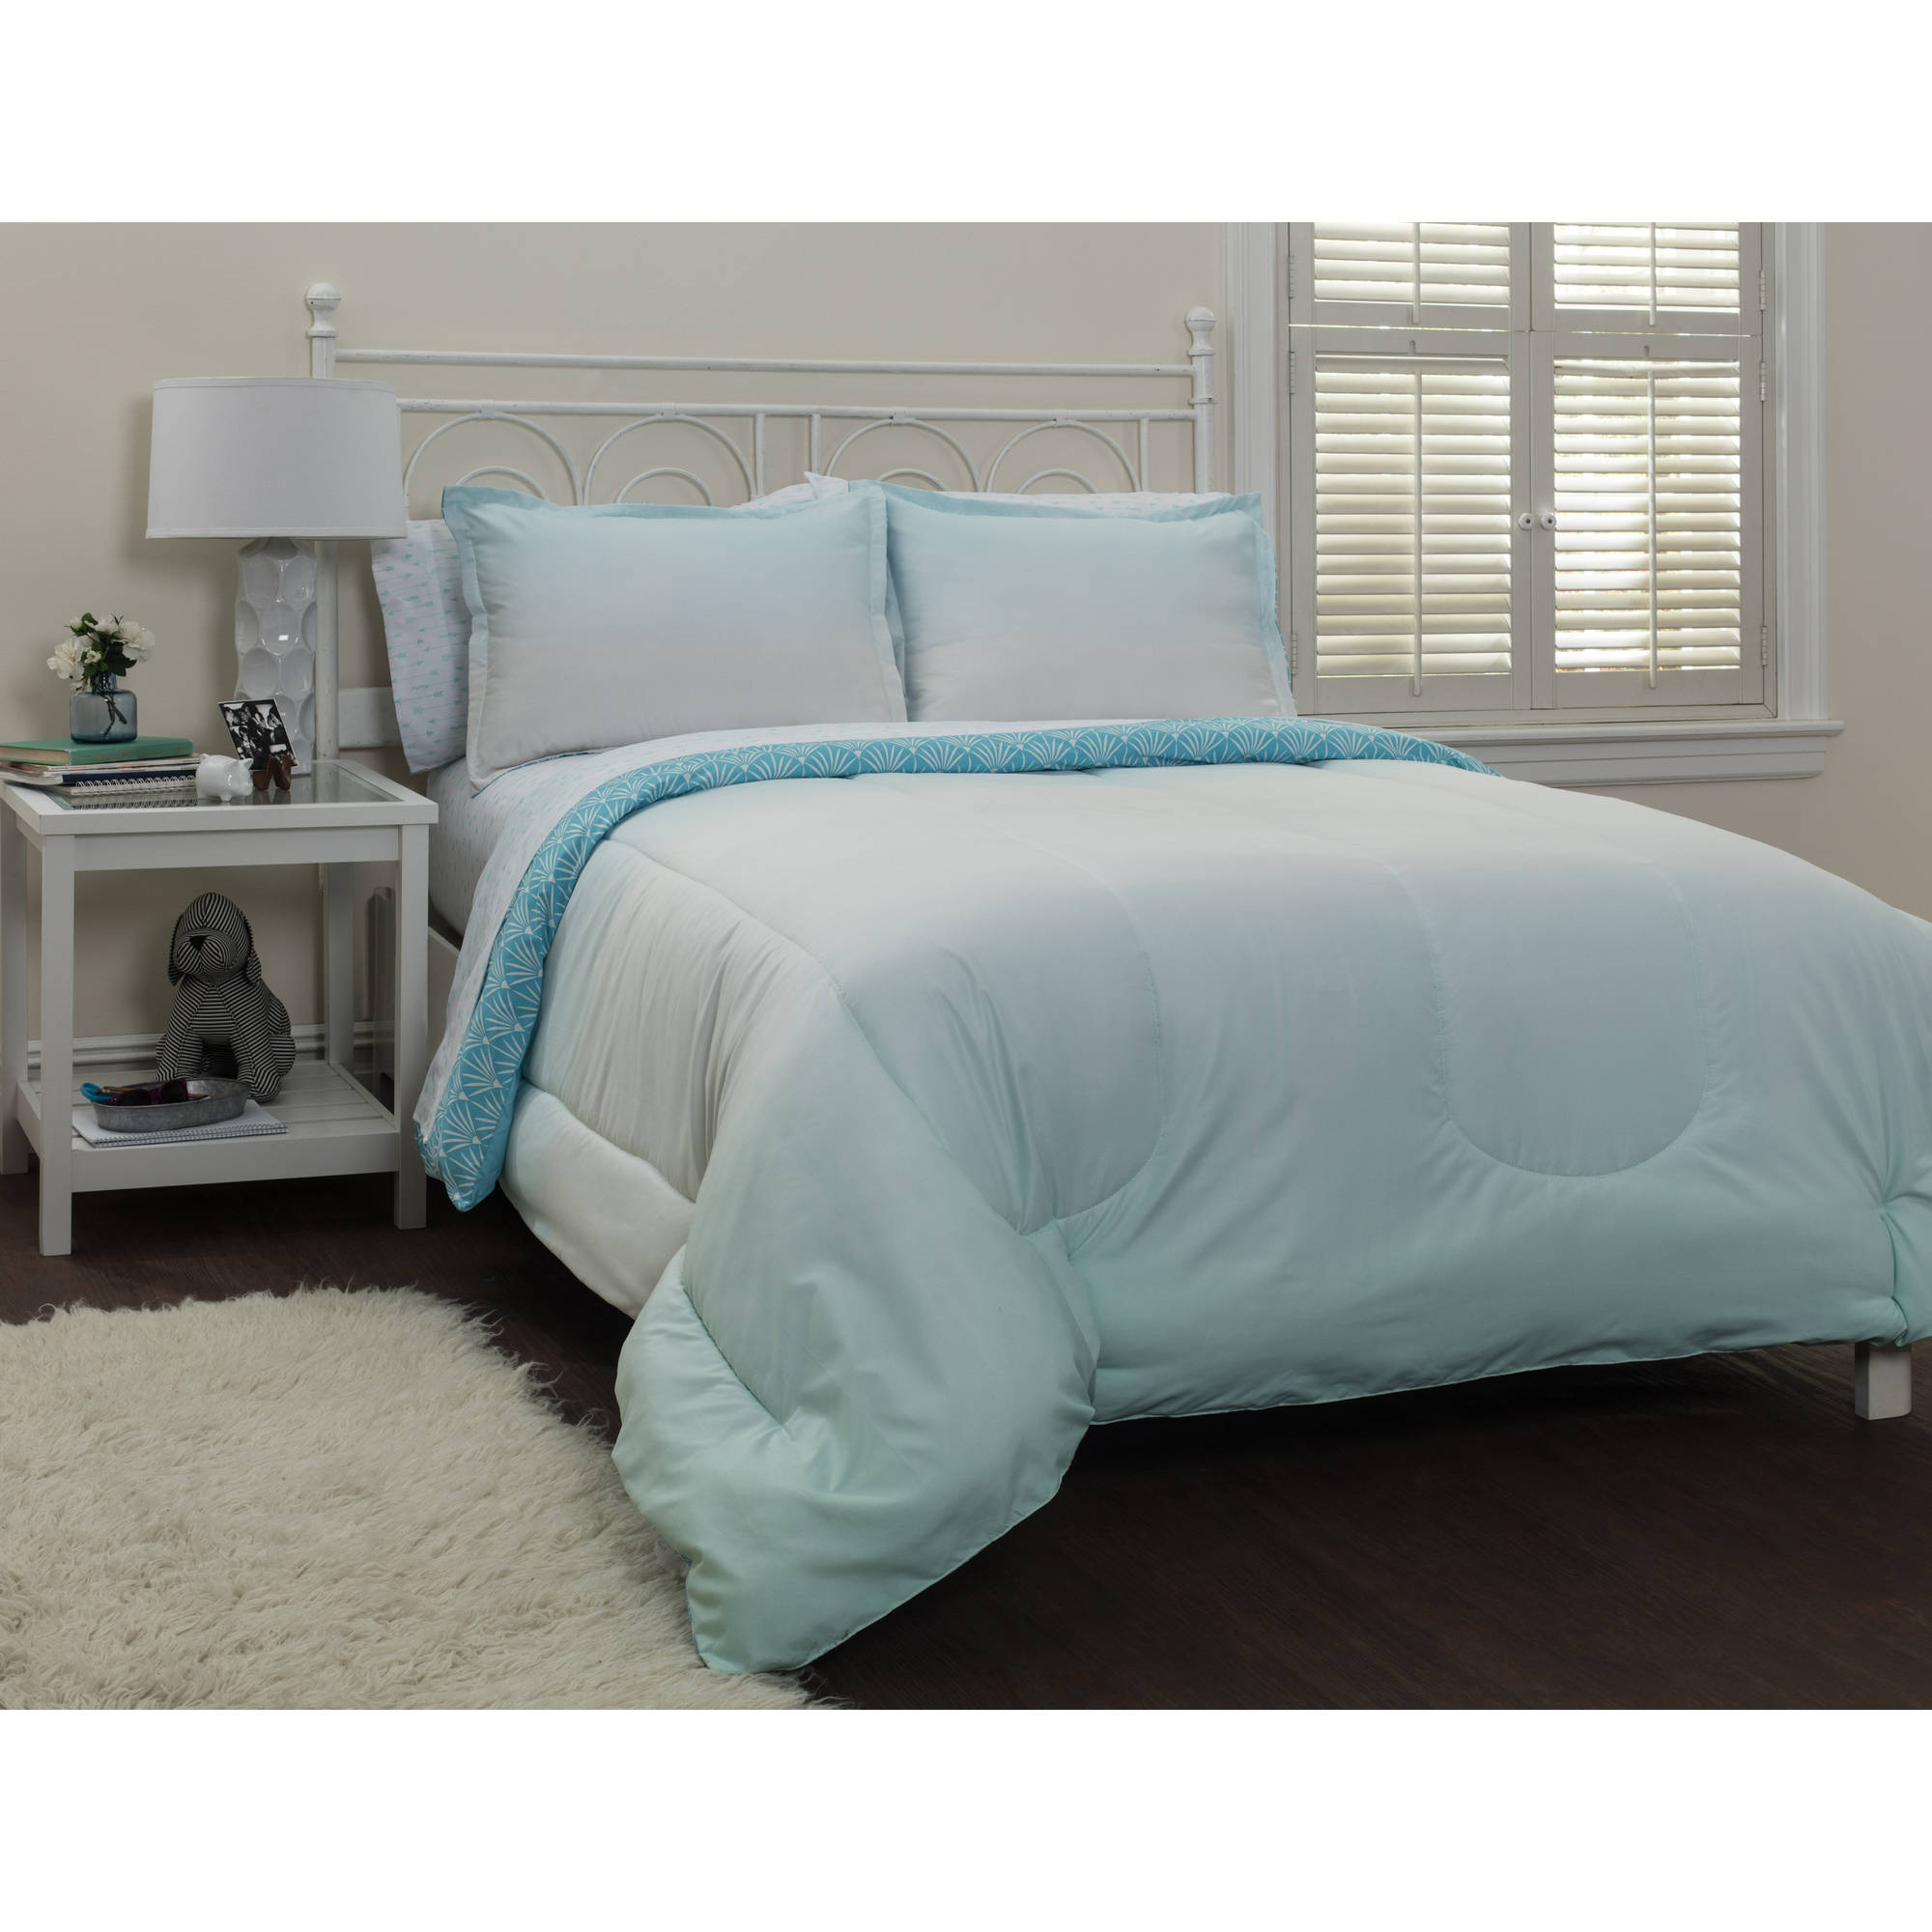 Your Zone Ombre Cool Bed in a Bag Set